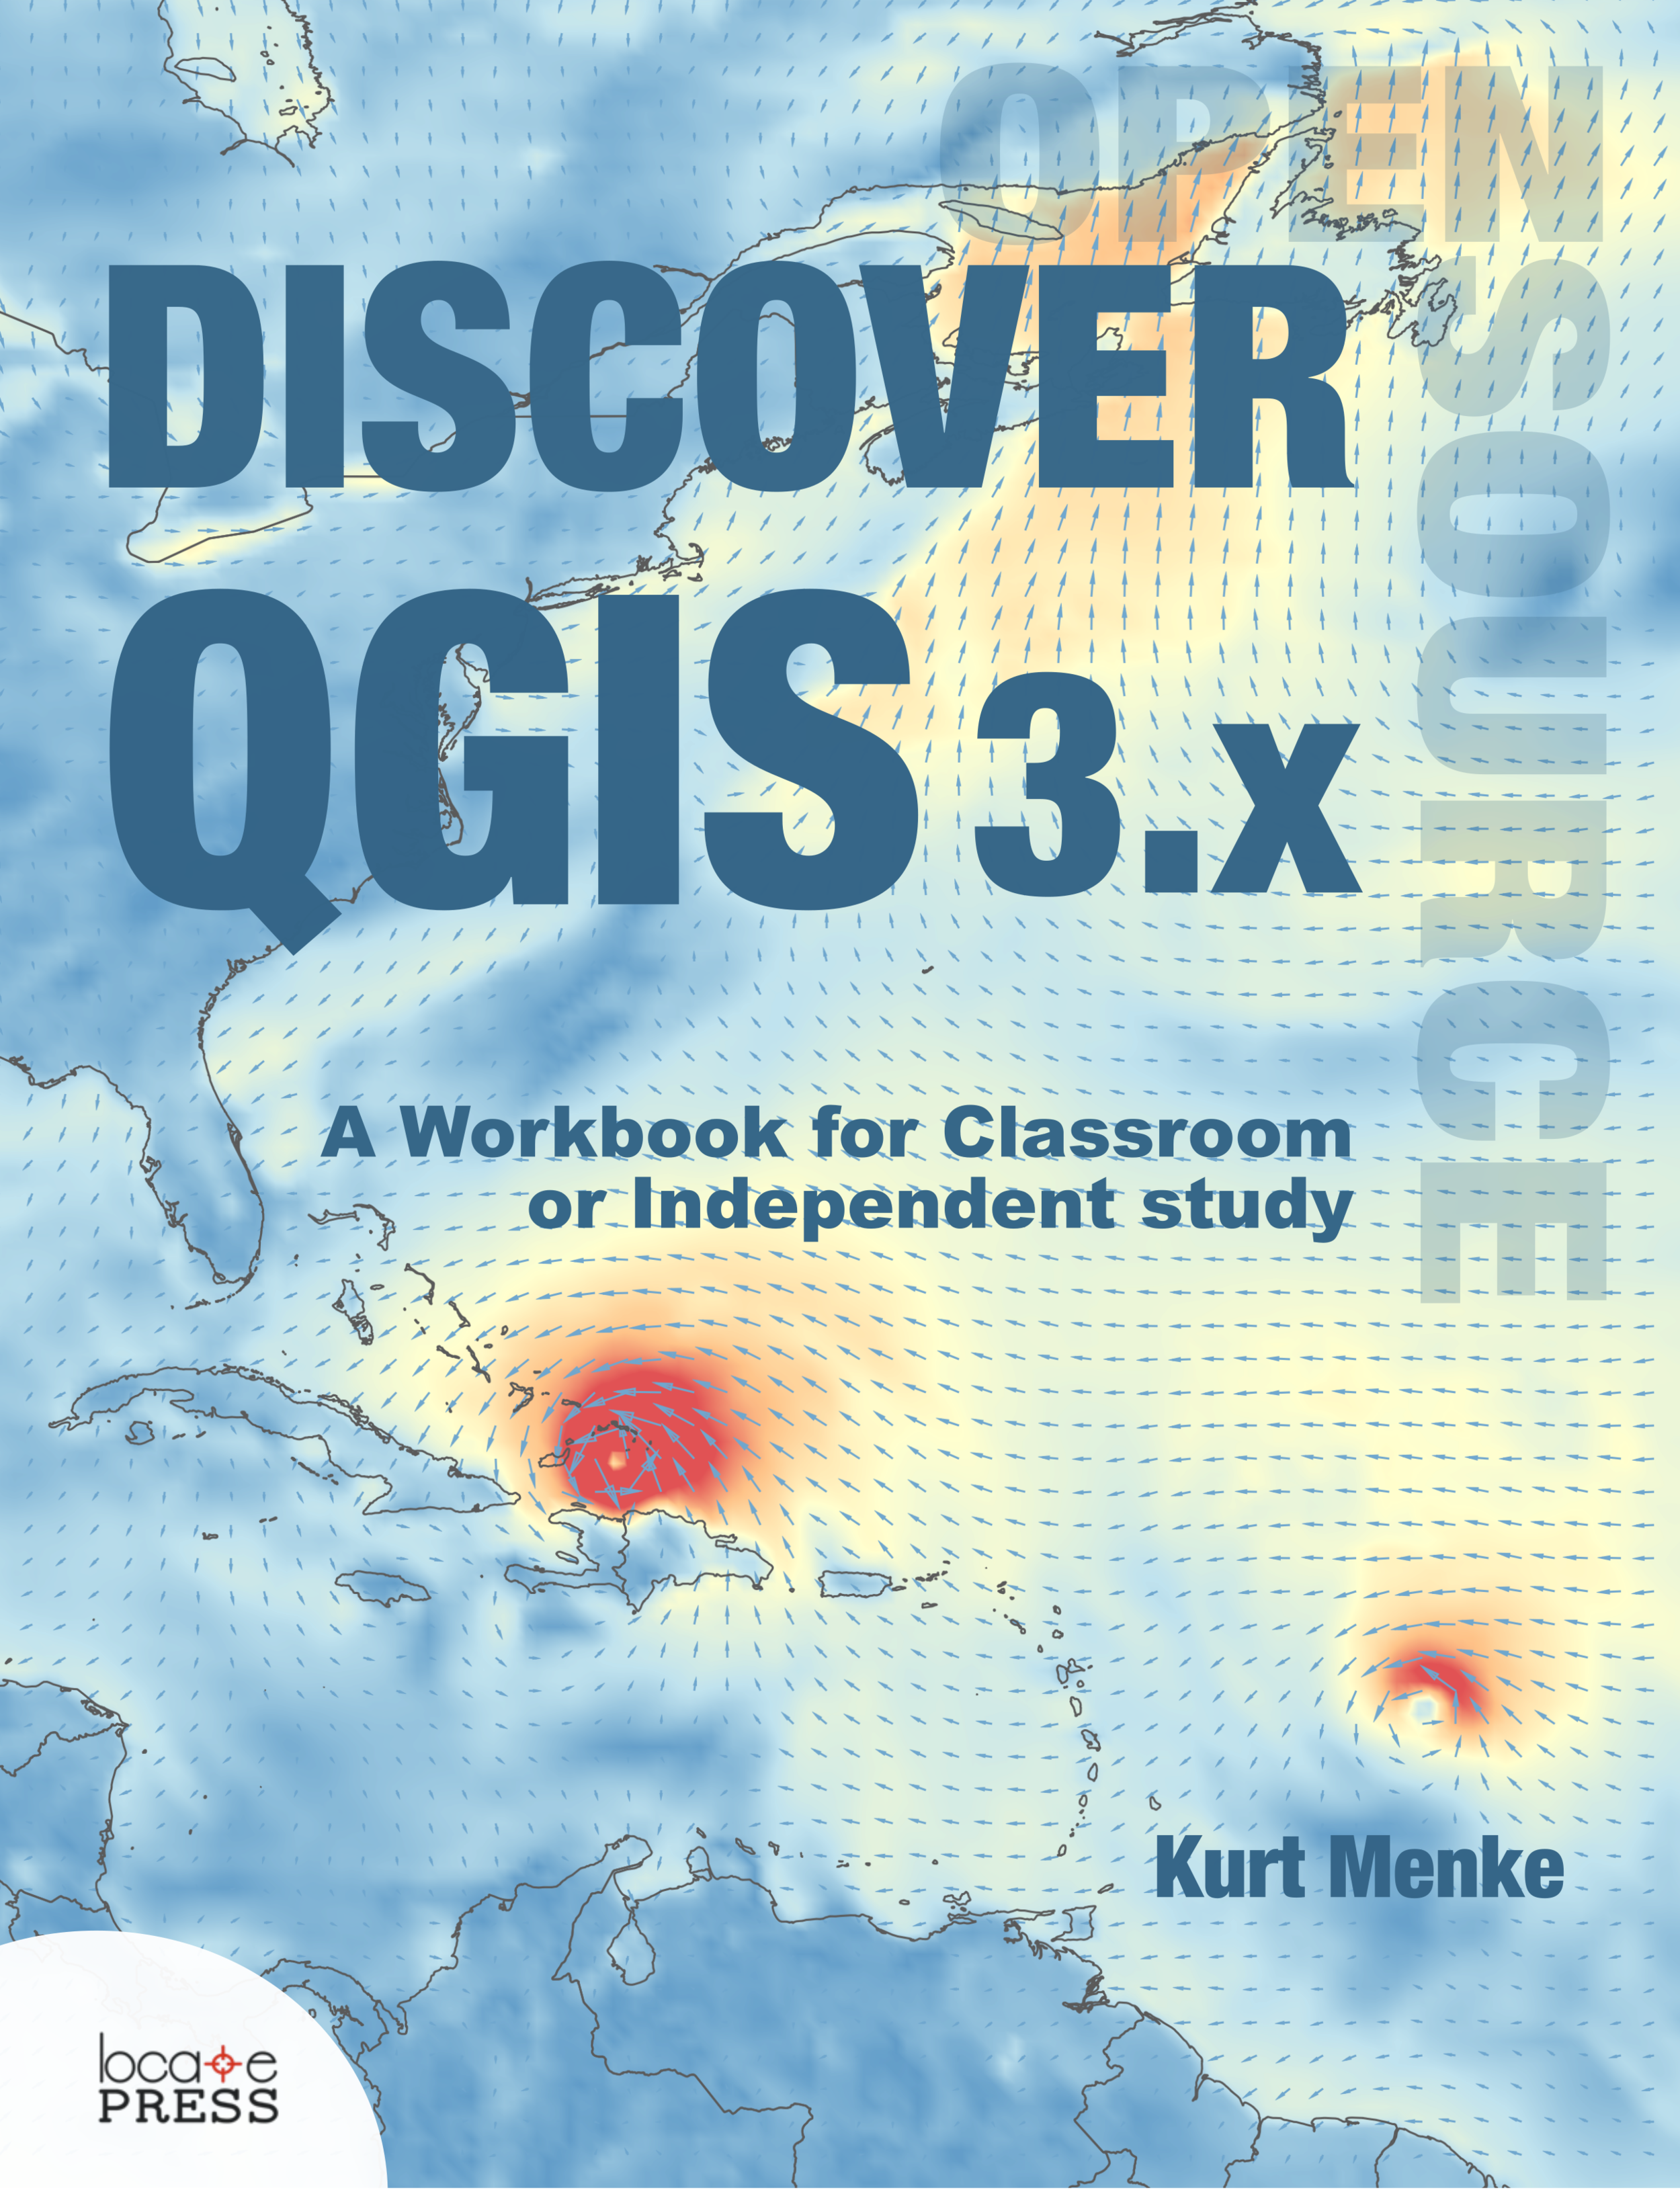 Discover QGIS 3.x -Out Now! - A comprehensive up-to-date workbook built for both the classroom and professionals looking to build their skills.Designed to take advantage of the latest QGIS features, this book will guide you in improving your maps and analysis.Discover QGIS 3.x is an update of the original title, using QGIS 3.6, covering Spatial analysis, Data management, and Cartography.What's new in this edition?Fifteen new exercisesA new section, Advanced Data Visualization, covering:Blending modes, Live layer effects, Geometry generators, Rendering Points, Time Manager, Native 3D & Mesh dataAppendices covering:Keyboard shortcuts, Useful Plugins & Getting involvedThe book is a complete resource and includes:Lab exercisesChallenge exercisesAll data, discussion questions, and solutions400 pages$35 e-book | $55 printhttps://locatepress.com/books